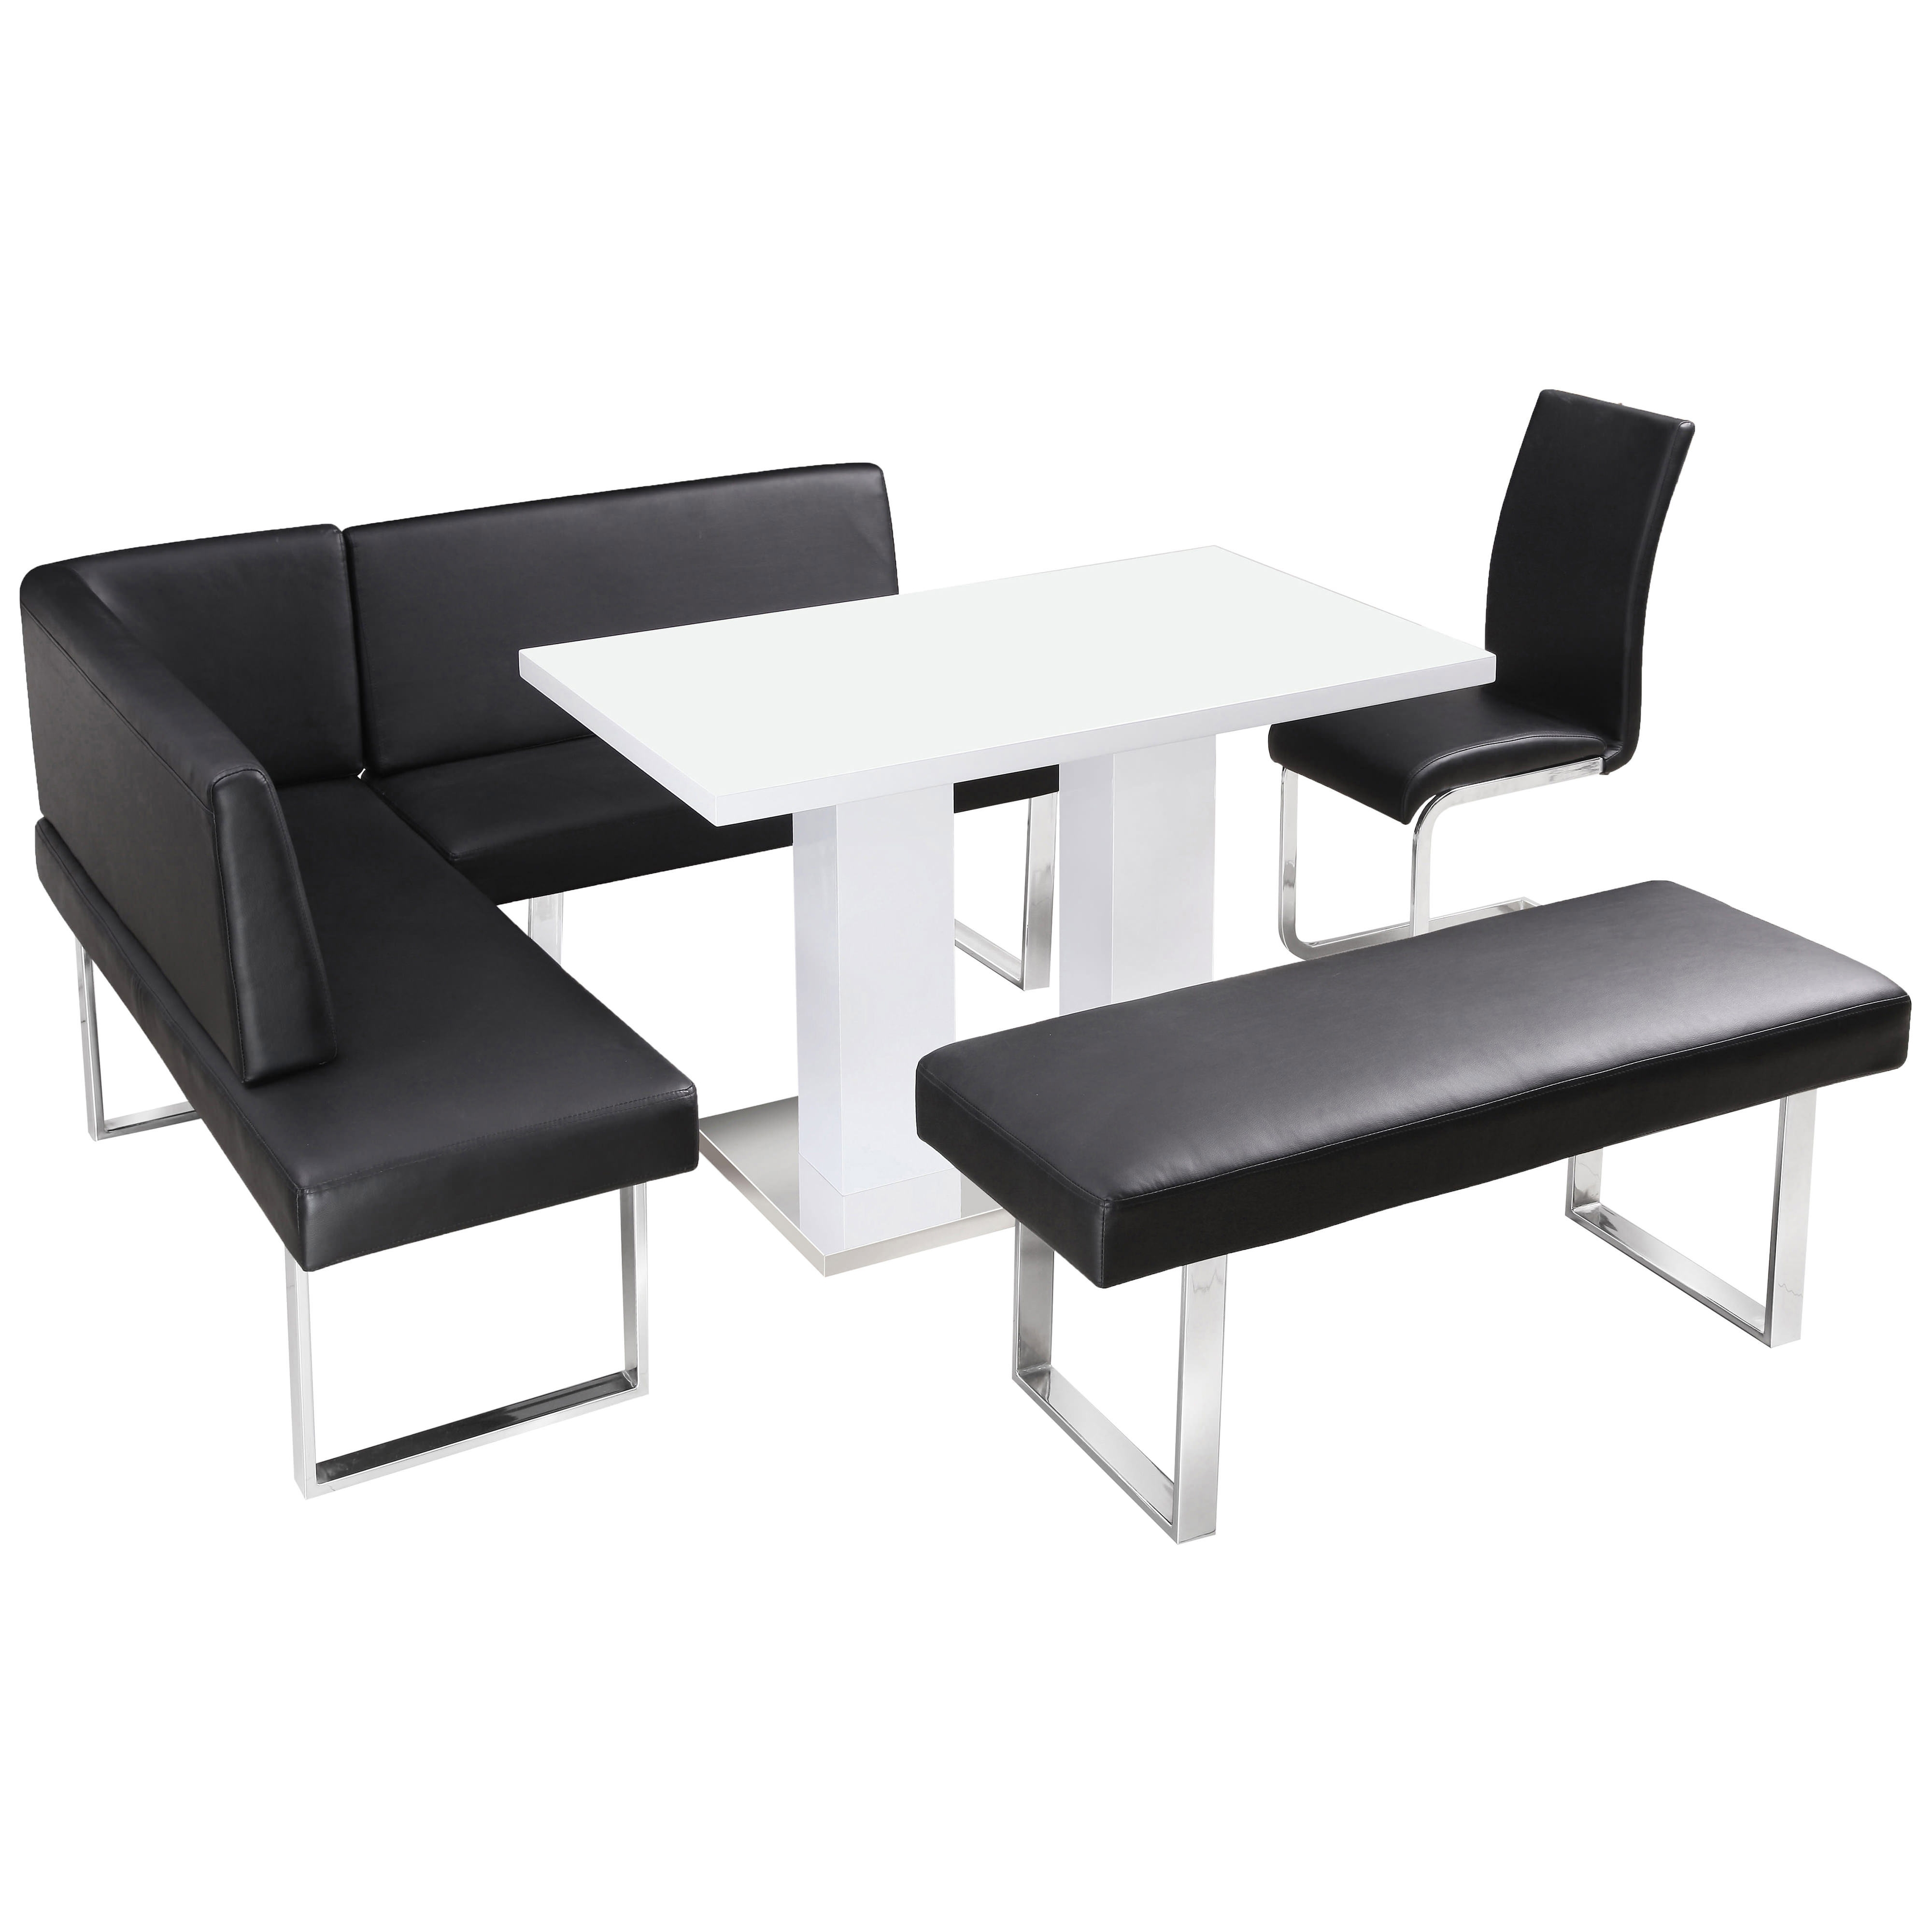 Black Gloss Dining Sets Regarding Trendy High Gloss Dining Table And Chair Set With Corner Bench & 1 Seat (View 17 of 25)